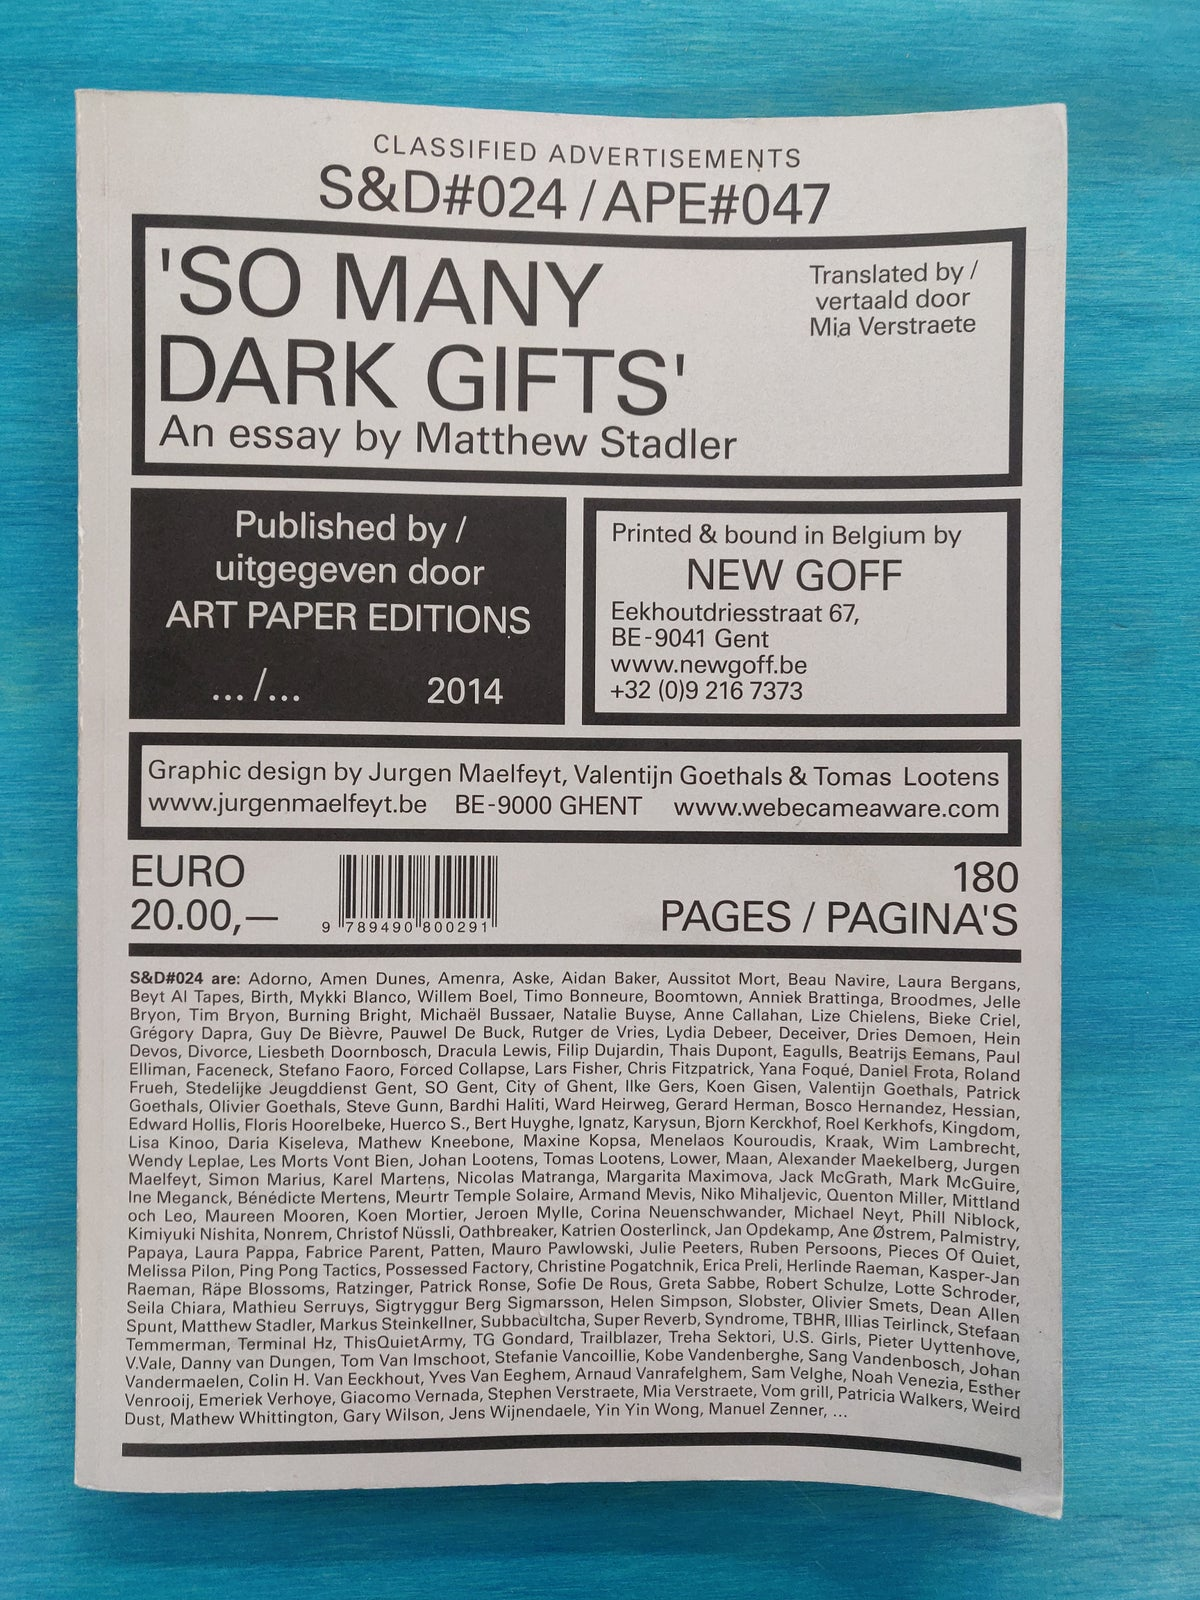 So Many Dark Gifts (S&D#024 / APE#047)